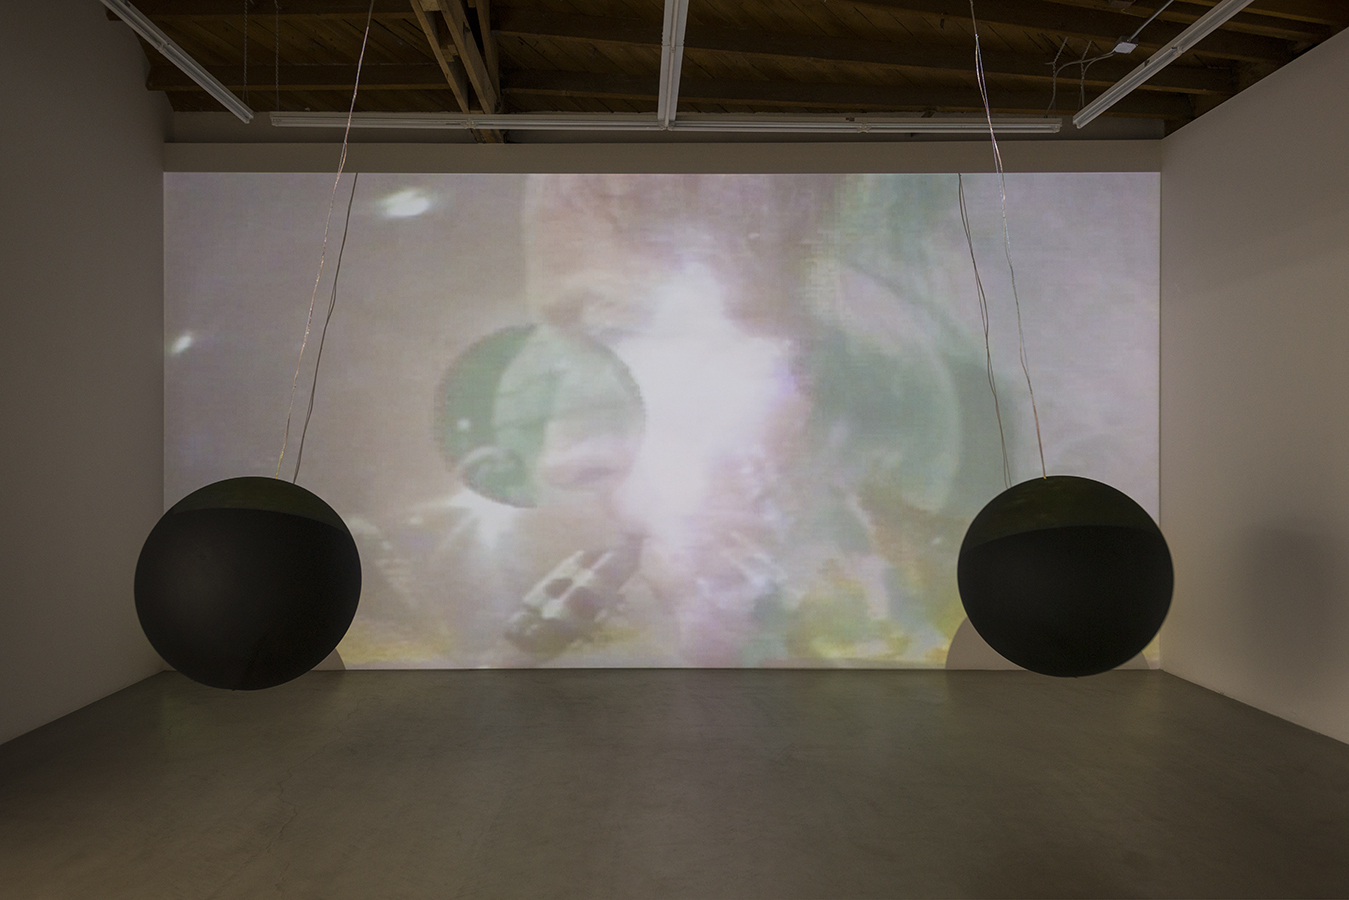 Installation View of Arlo Acton and Terry Riley's Music with Balls Video with the original Acton speaker spheres in front